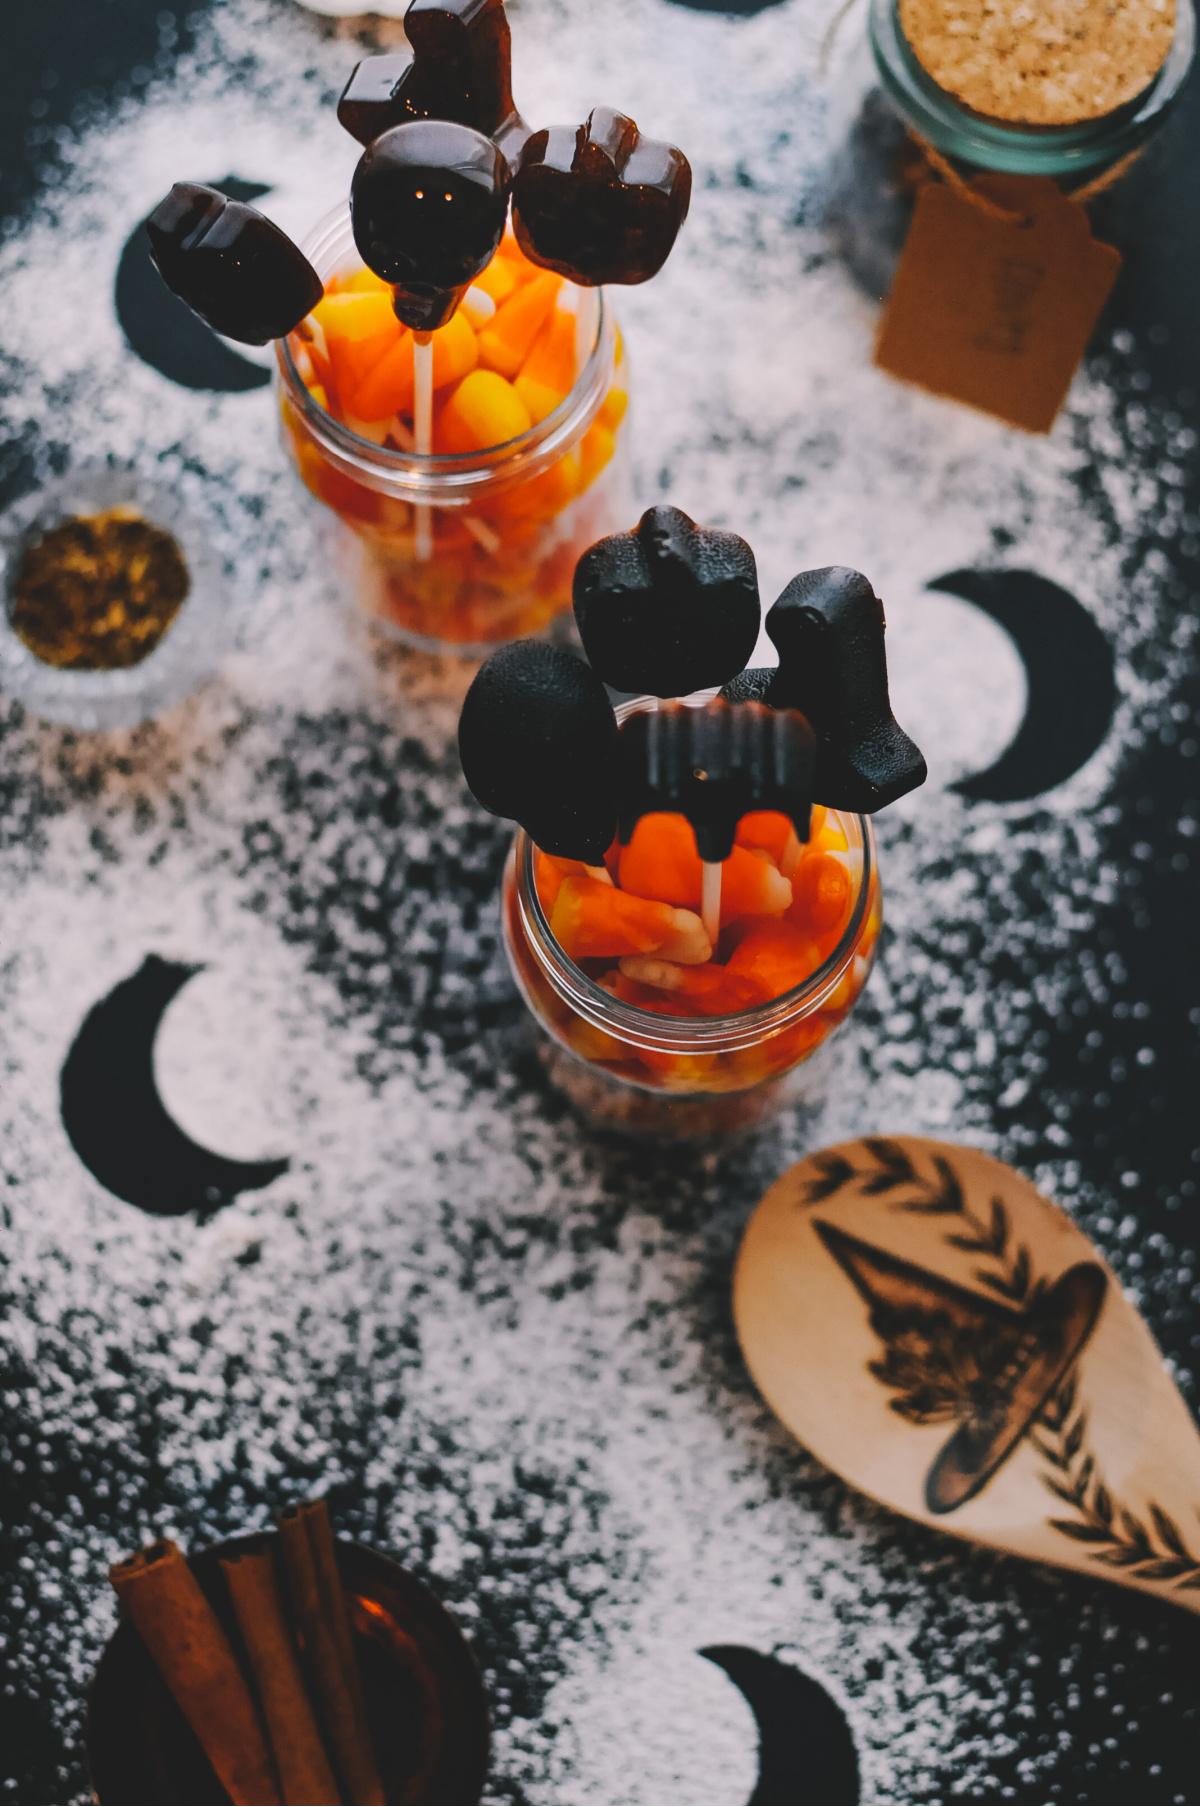 jars of candy corn with herbal lollipops and sugar sprinkled on the table